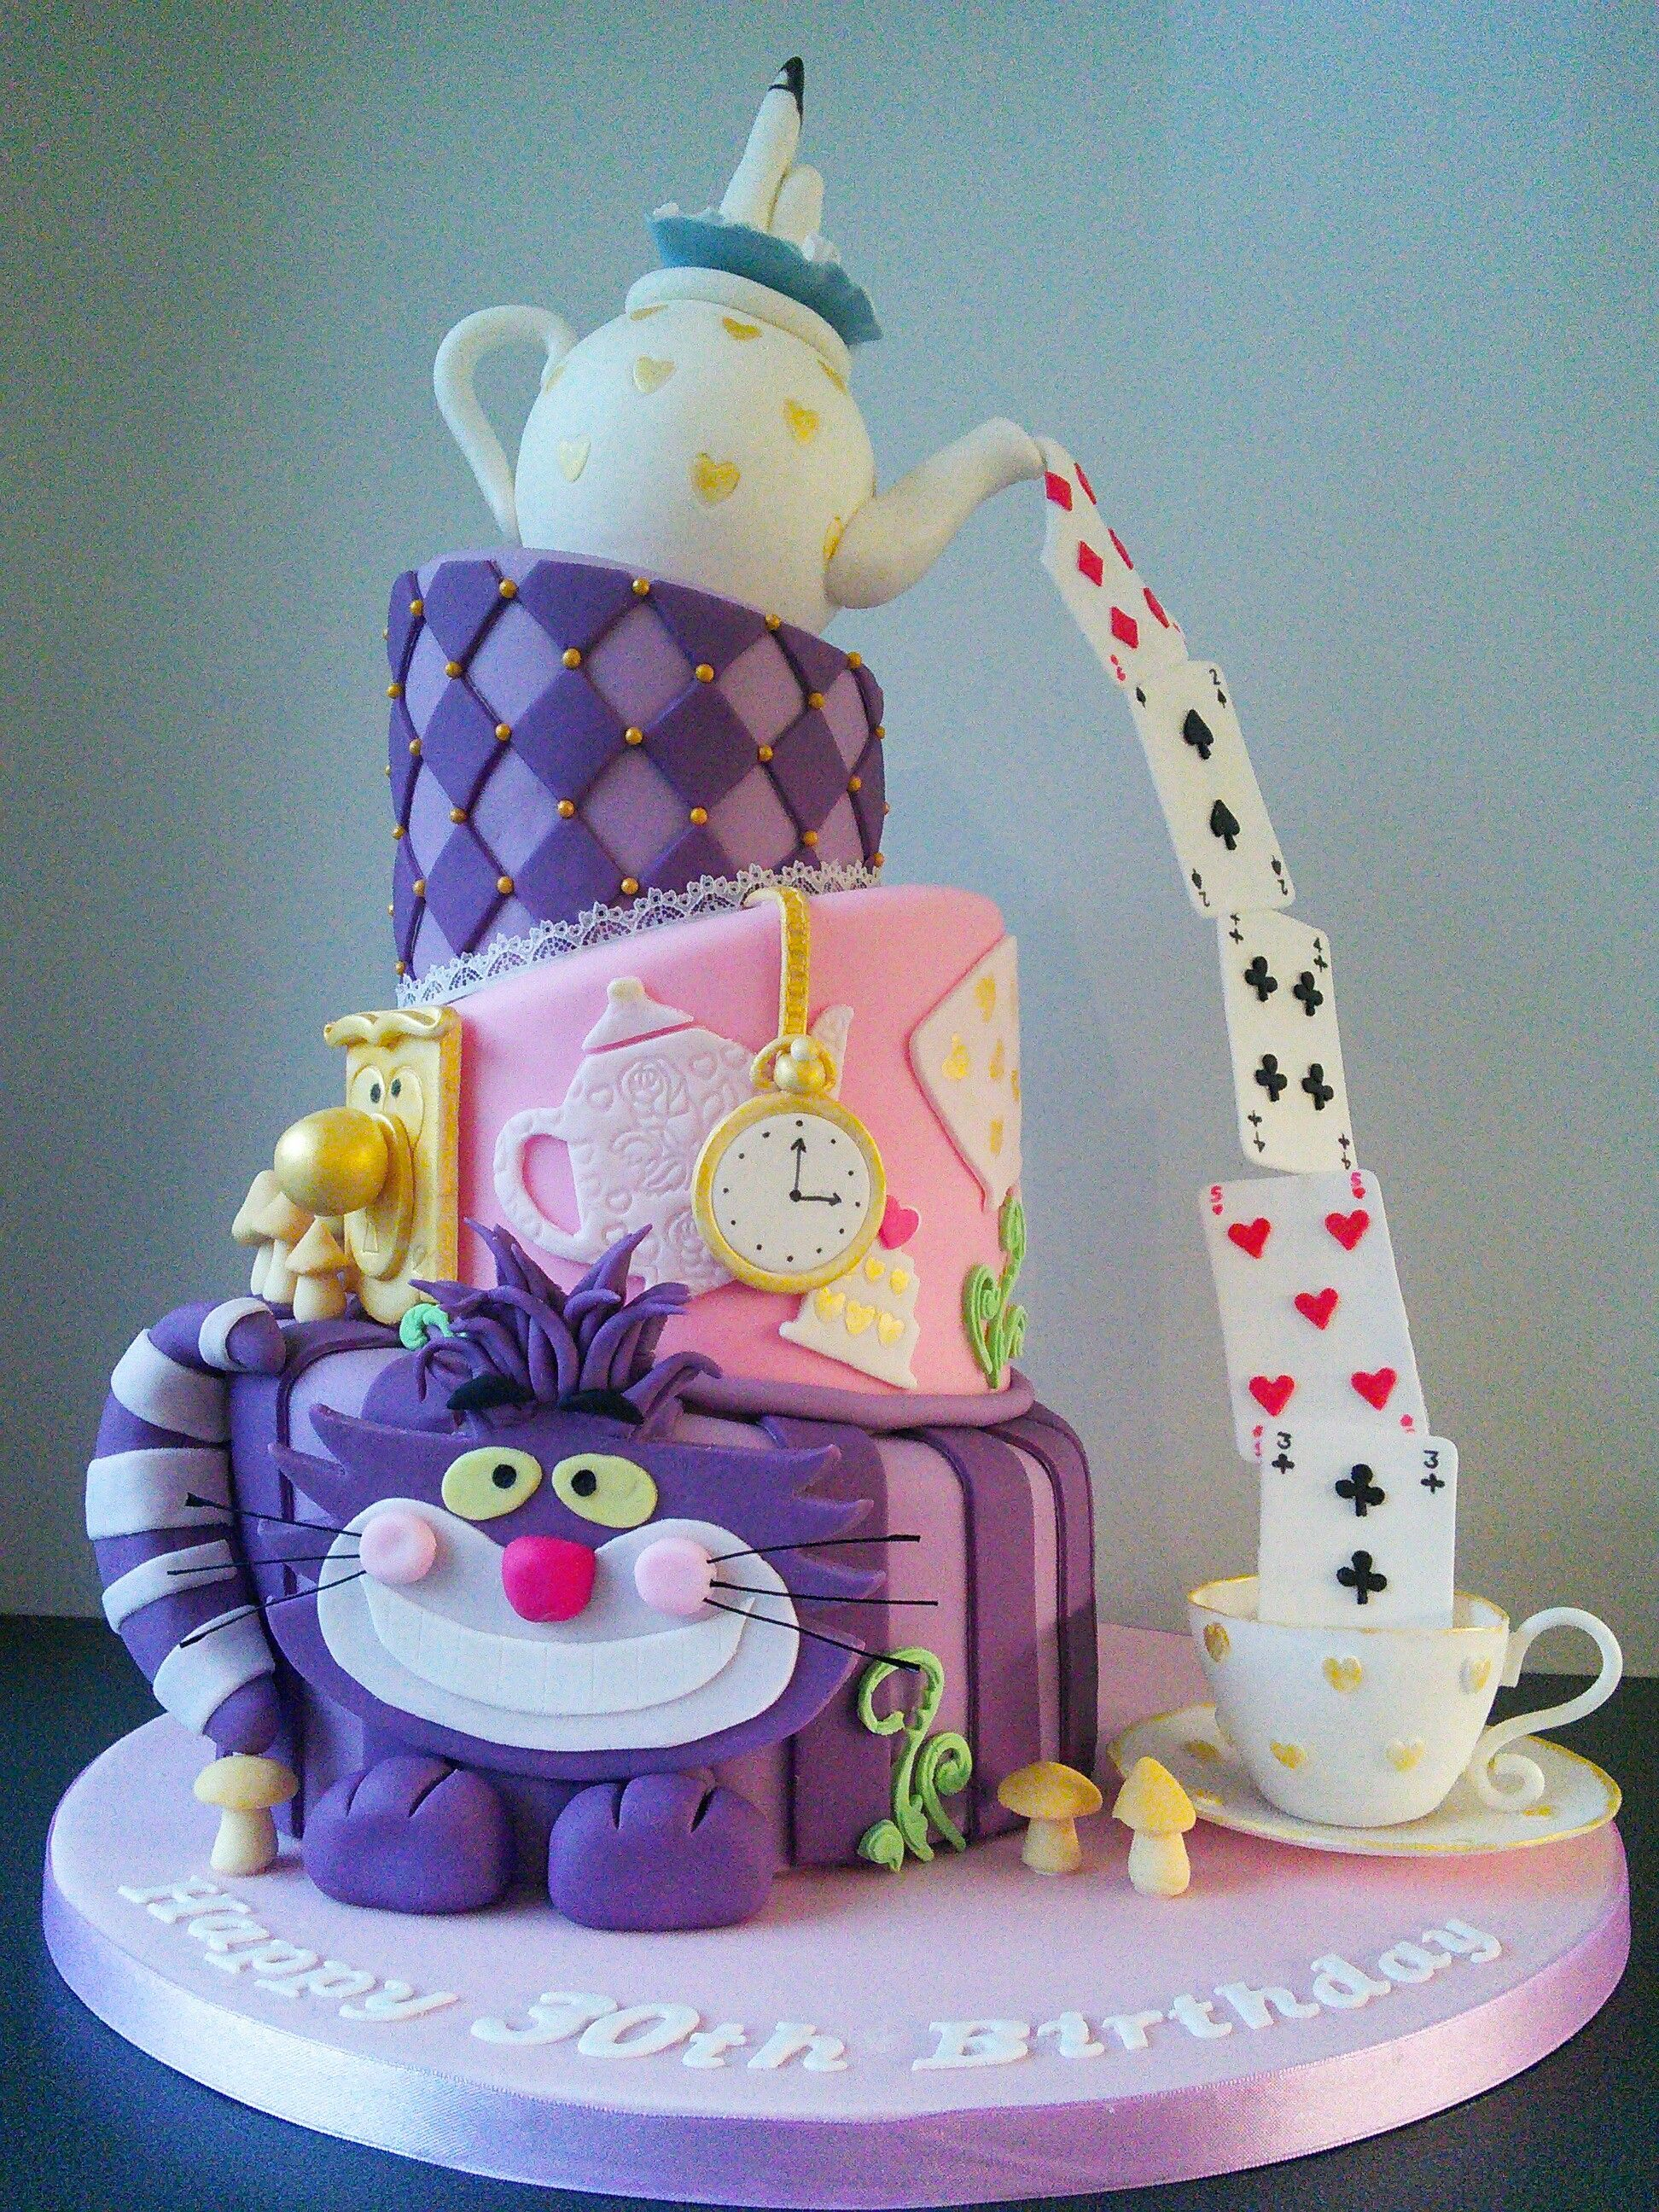 Mad Hatters Tea Party 30th Birthday Cake With Cheshire Cake Pouring